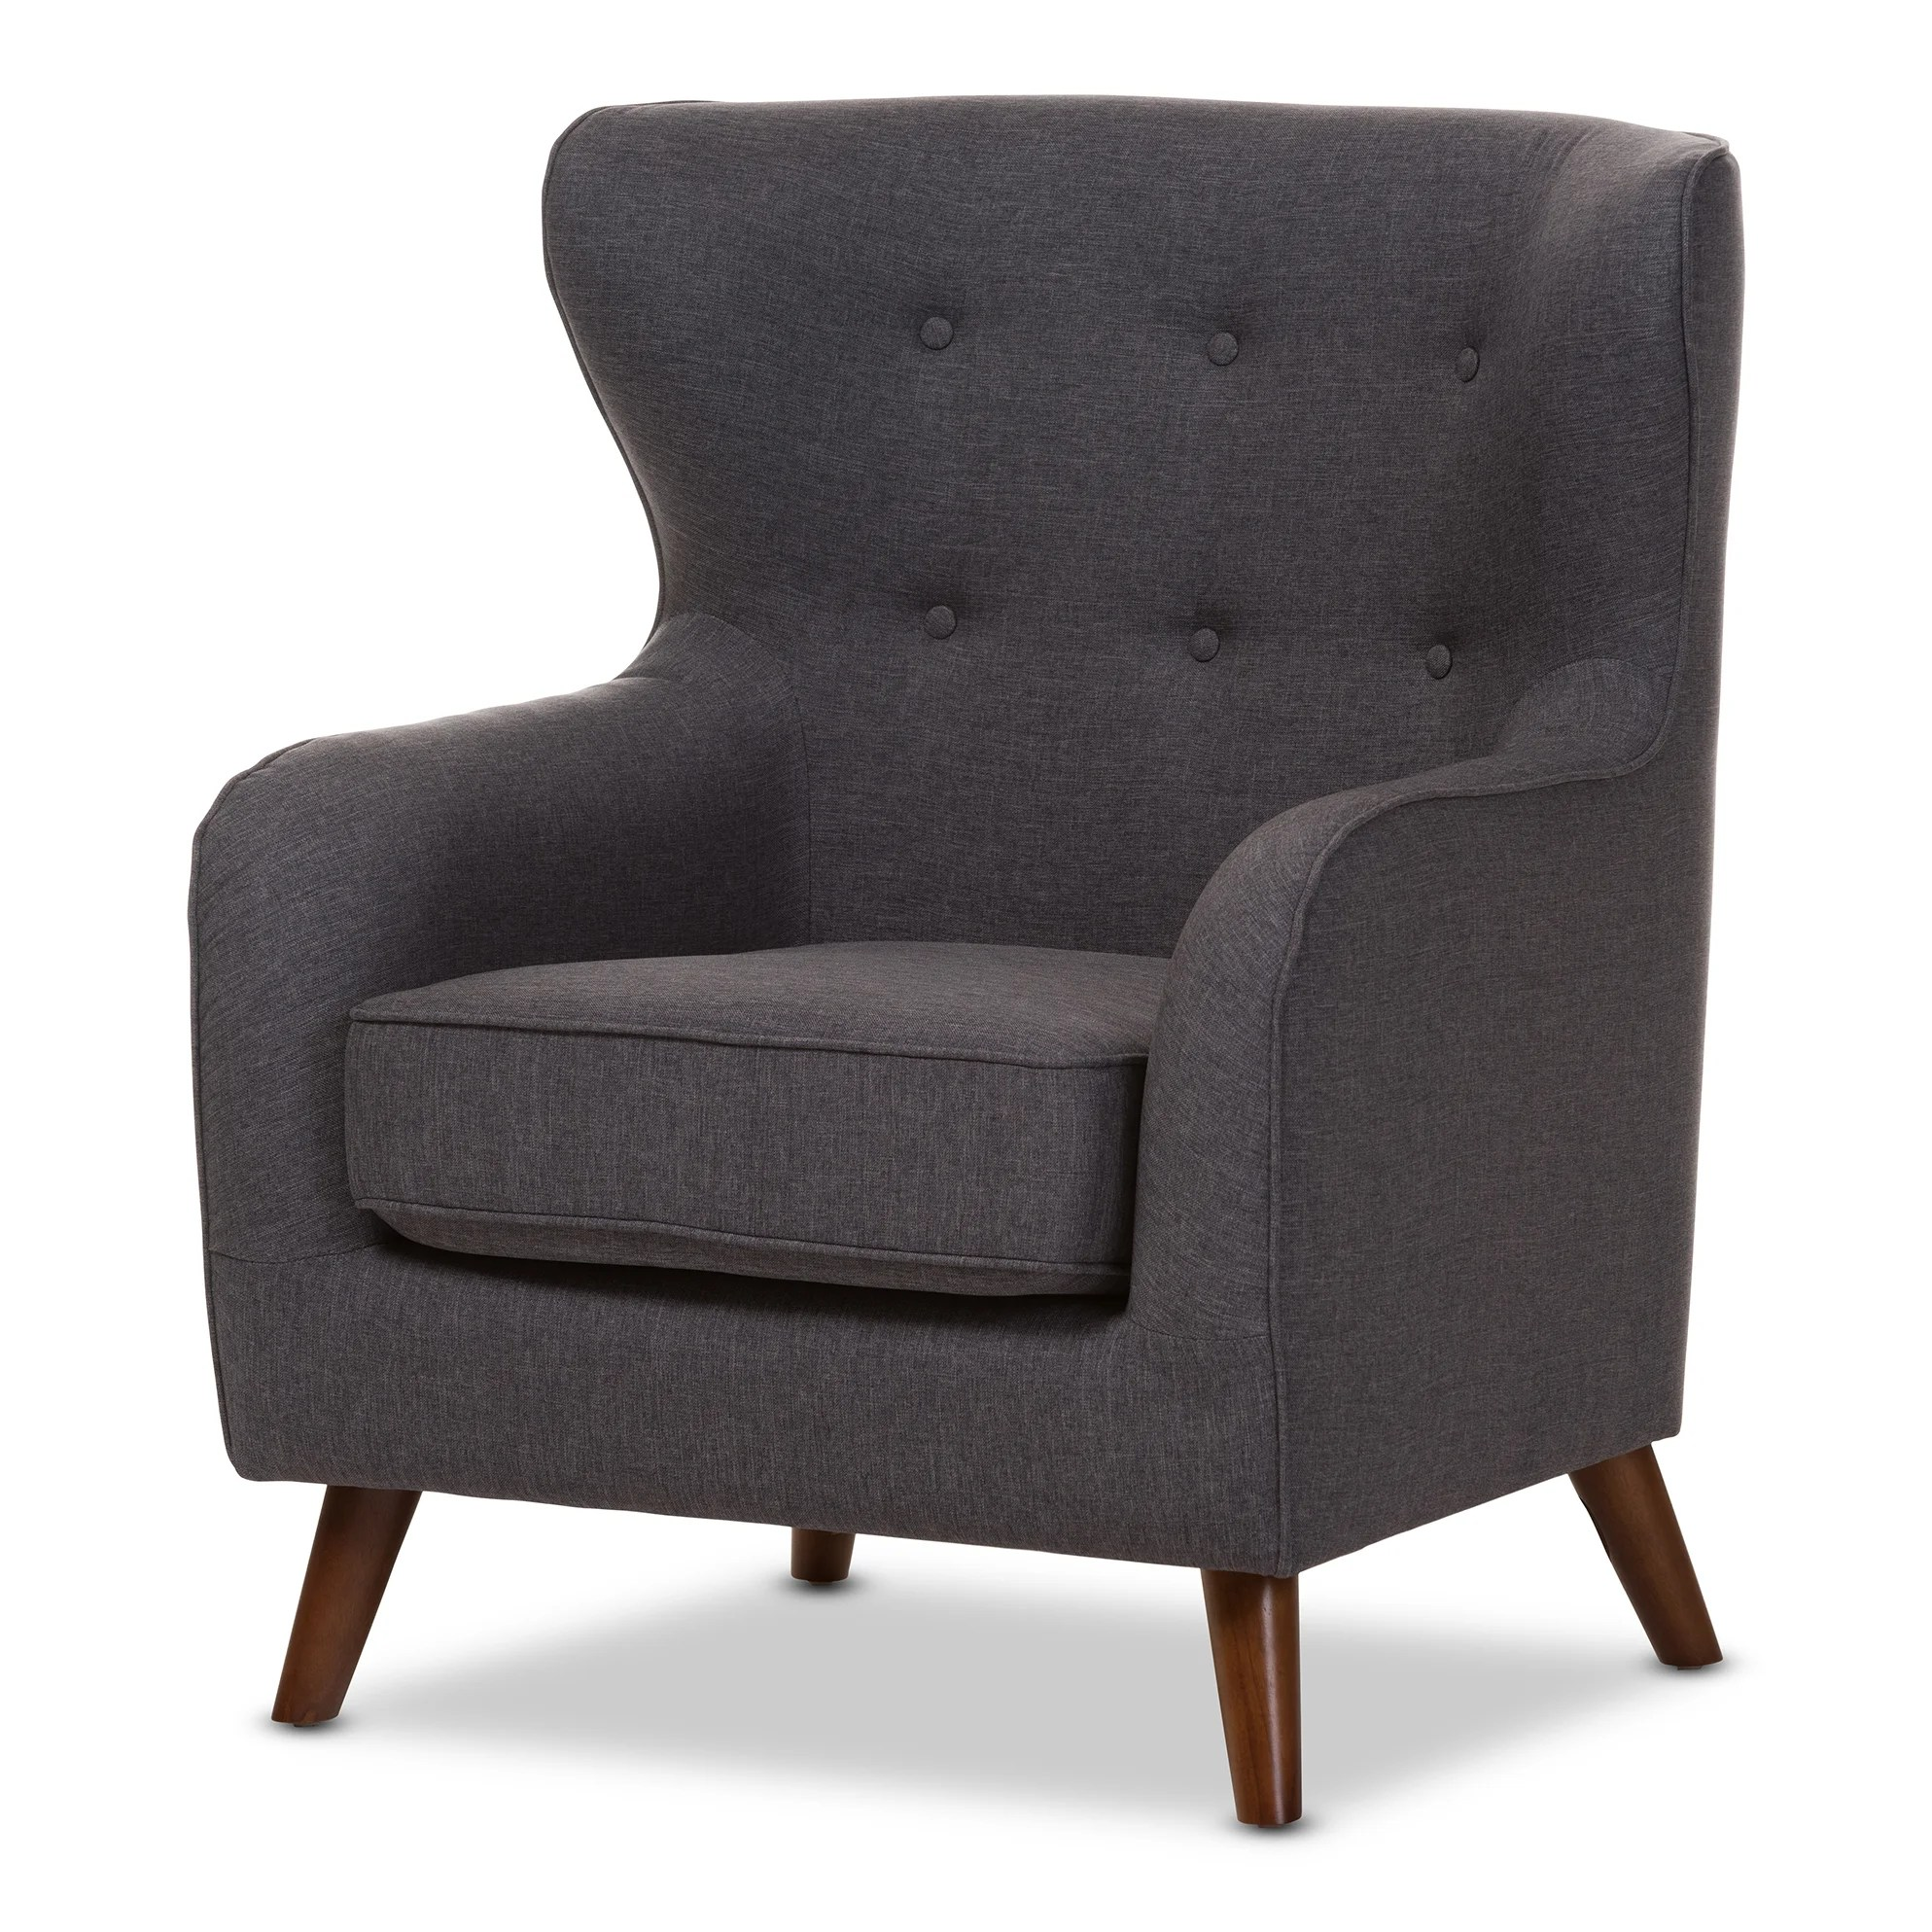 Upholstered Club Chair Wholesale Interiors Baxton Studio Sabrina Upholstered Club